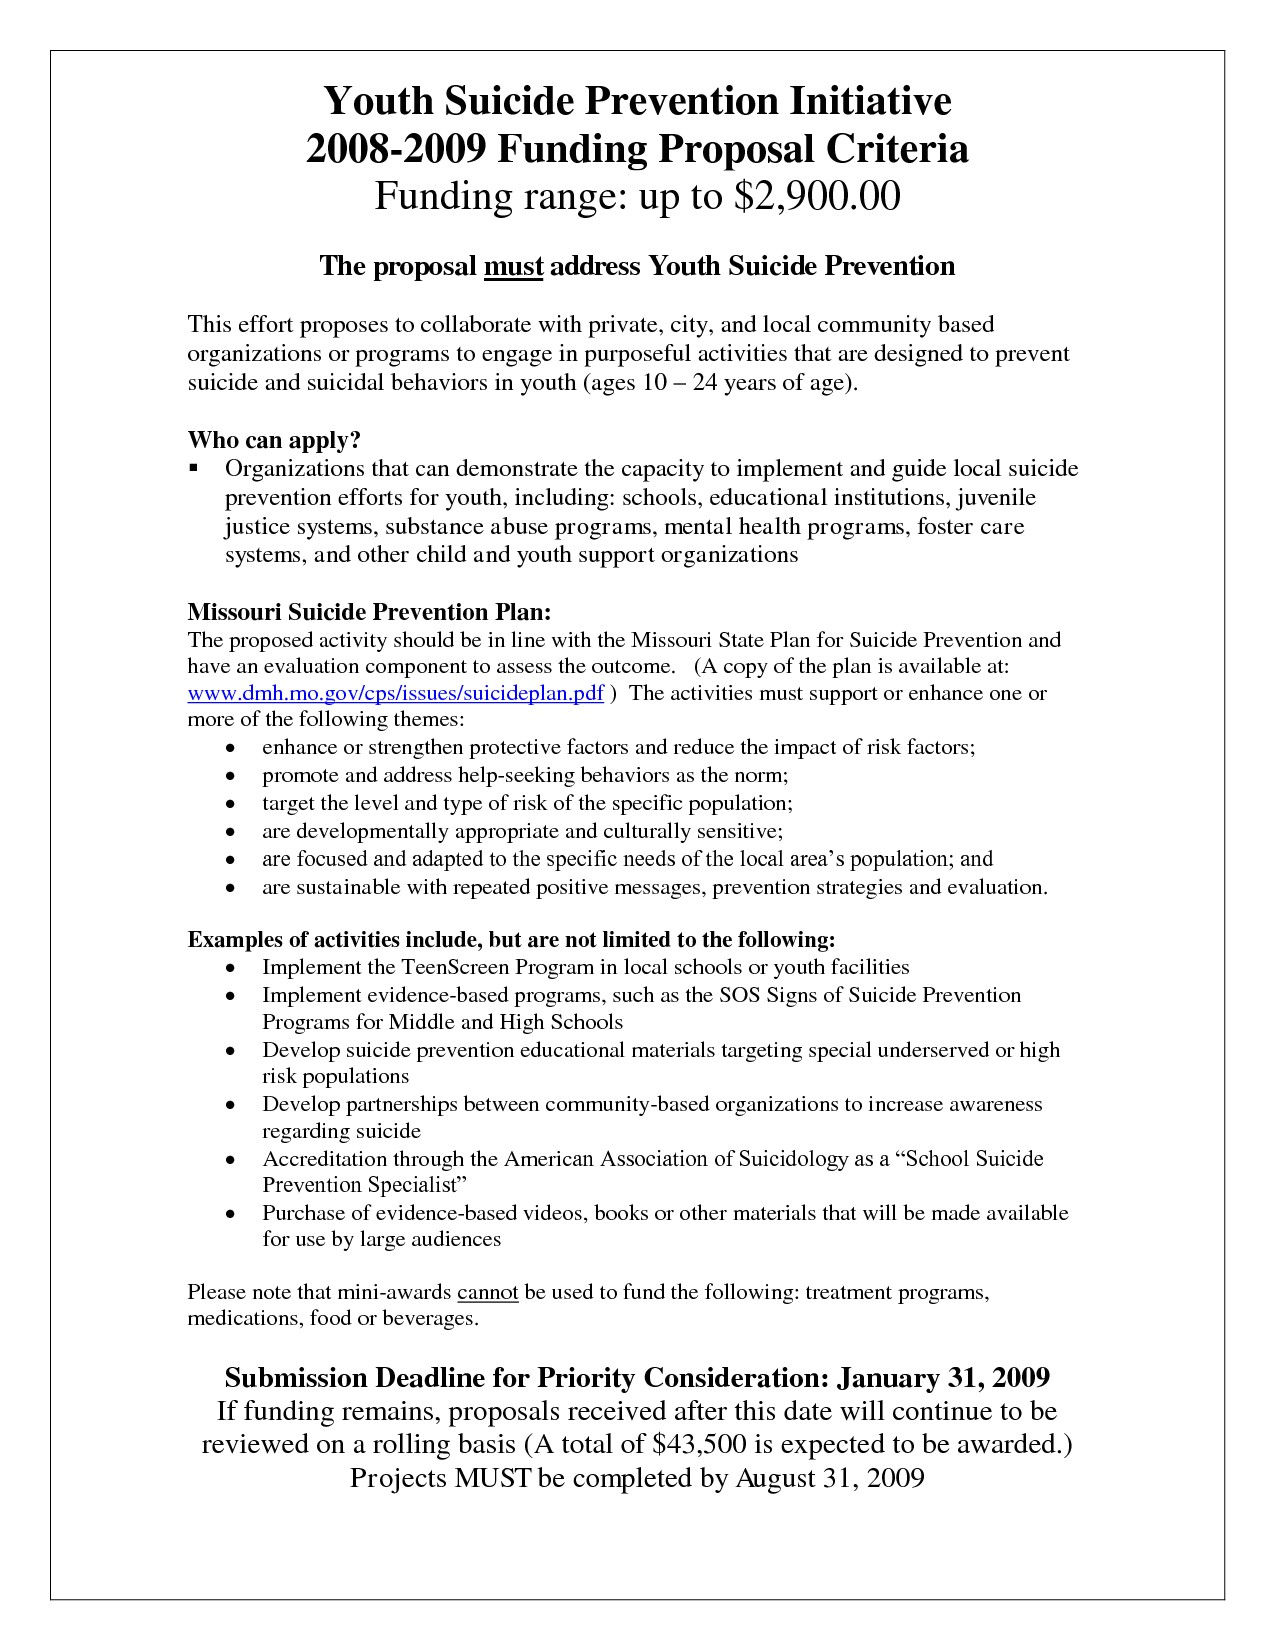 Youth Program Proposal Template 8 Best Images Of Sample Program Proposal Template Youth